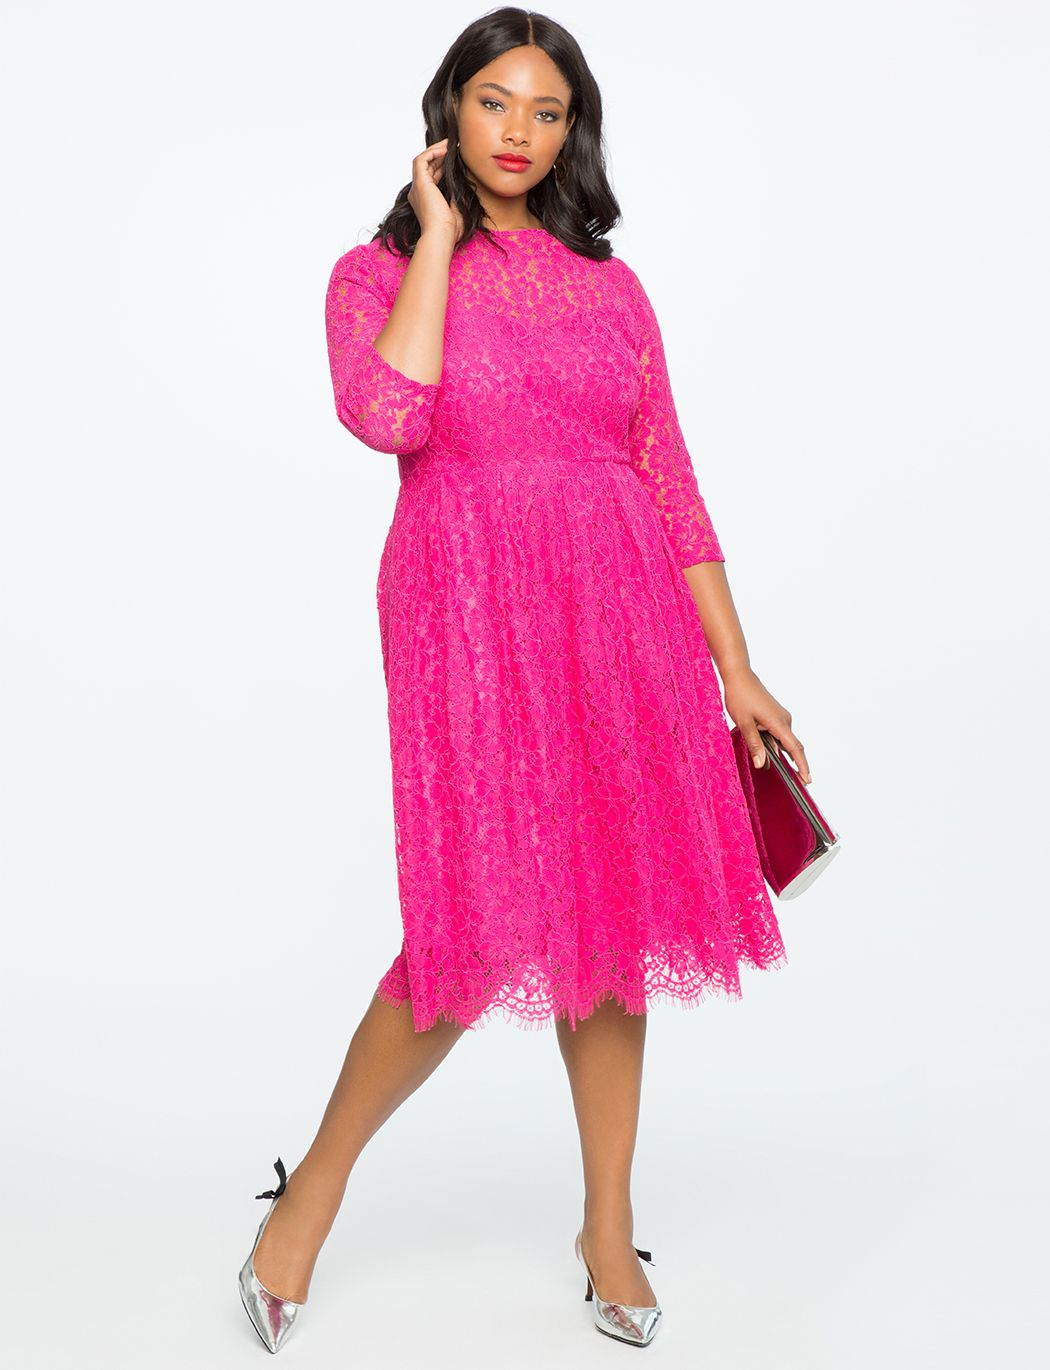 Lace Fit And Flare Dress Women S Plus Size Dresses Eloquii Party Dresses With Sleeves Pink Plus Size Dresses Fit And Flare Dress [ 1370 x 1050 Pixel ]